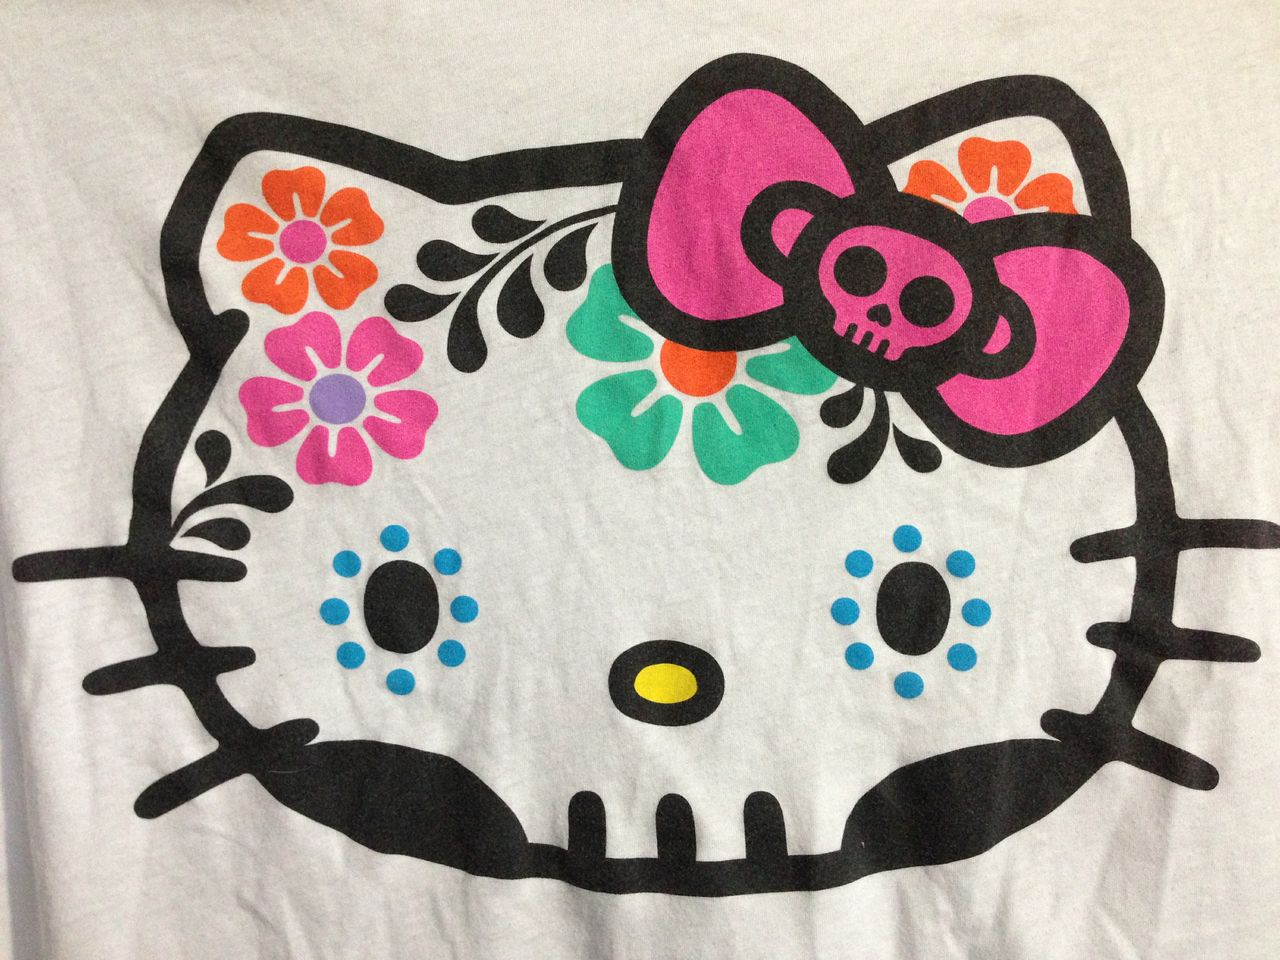 Gallery For gt Hello Kitty Sugar Skull Drawing